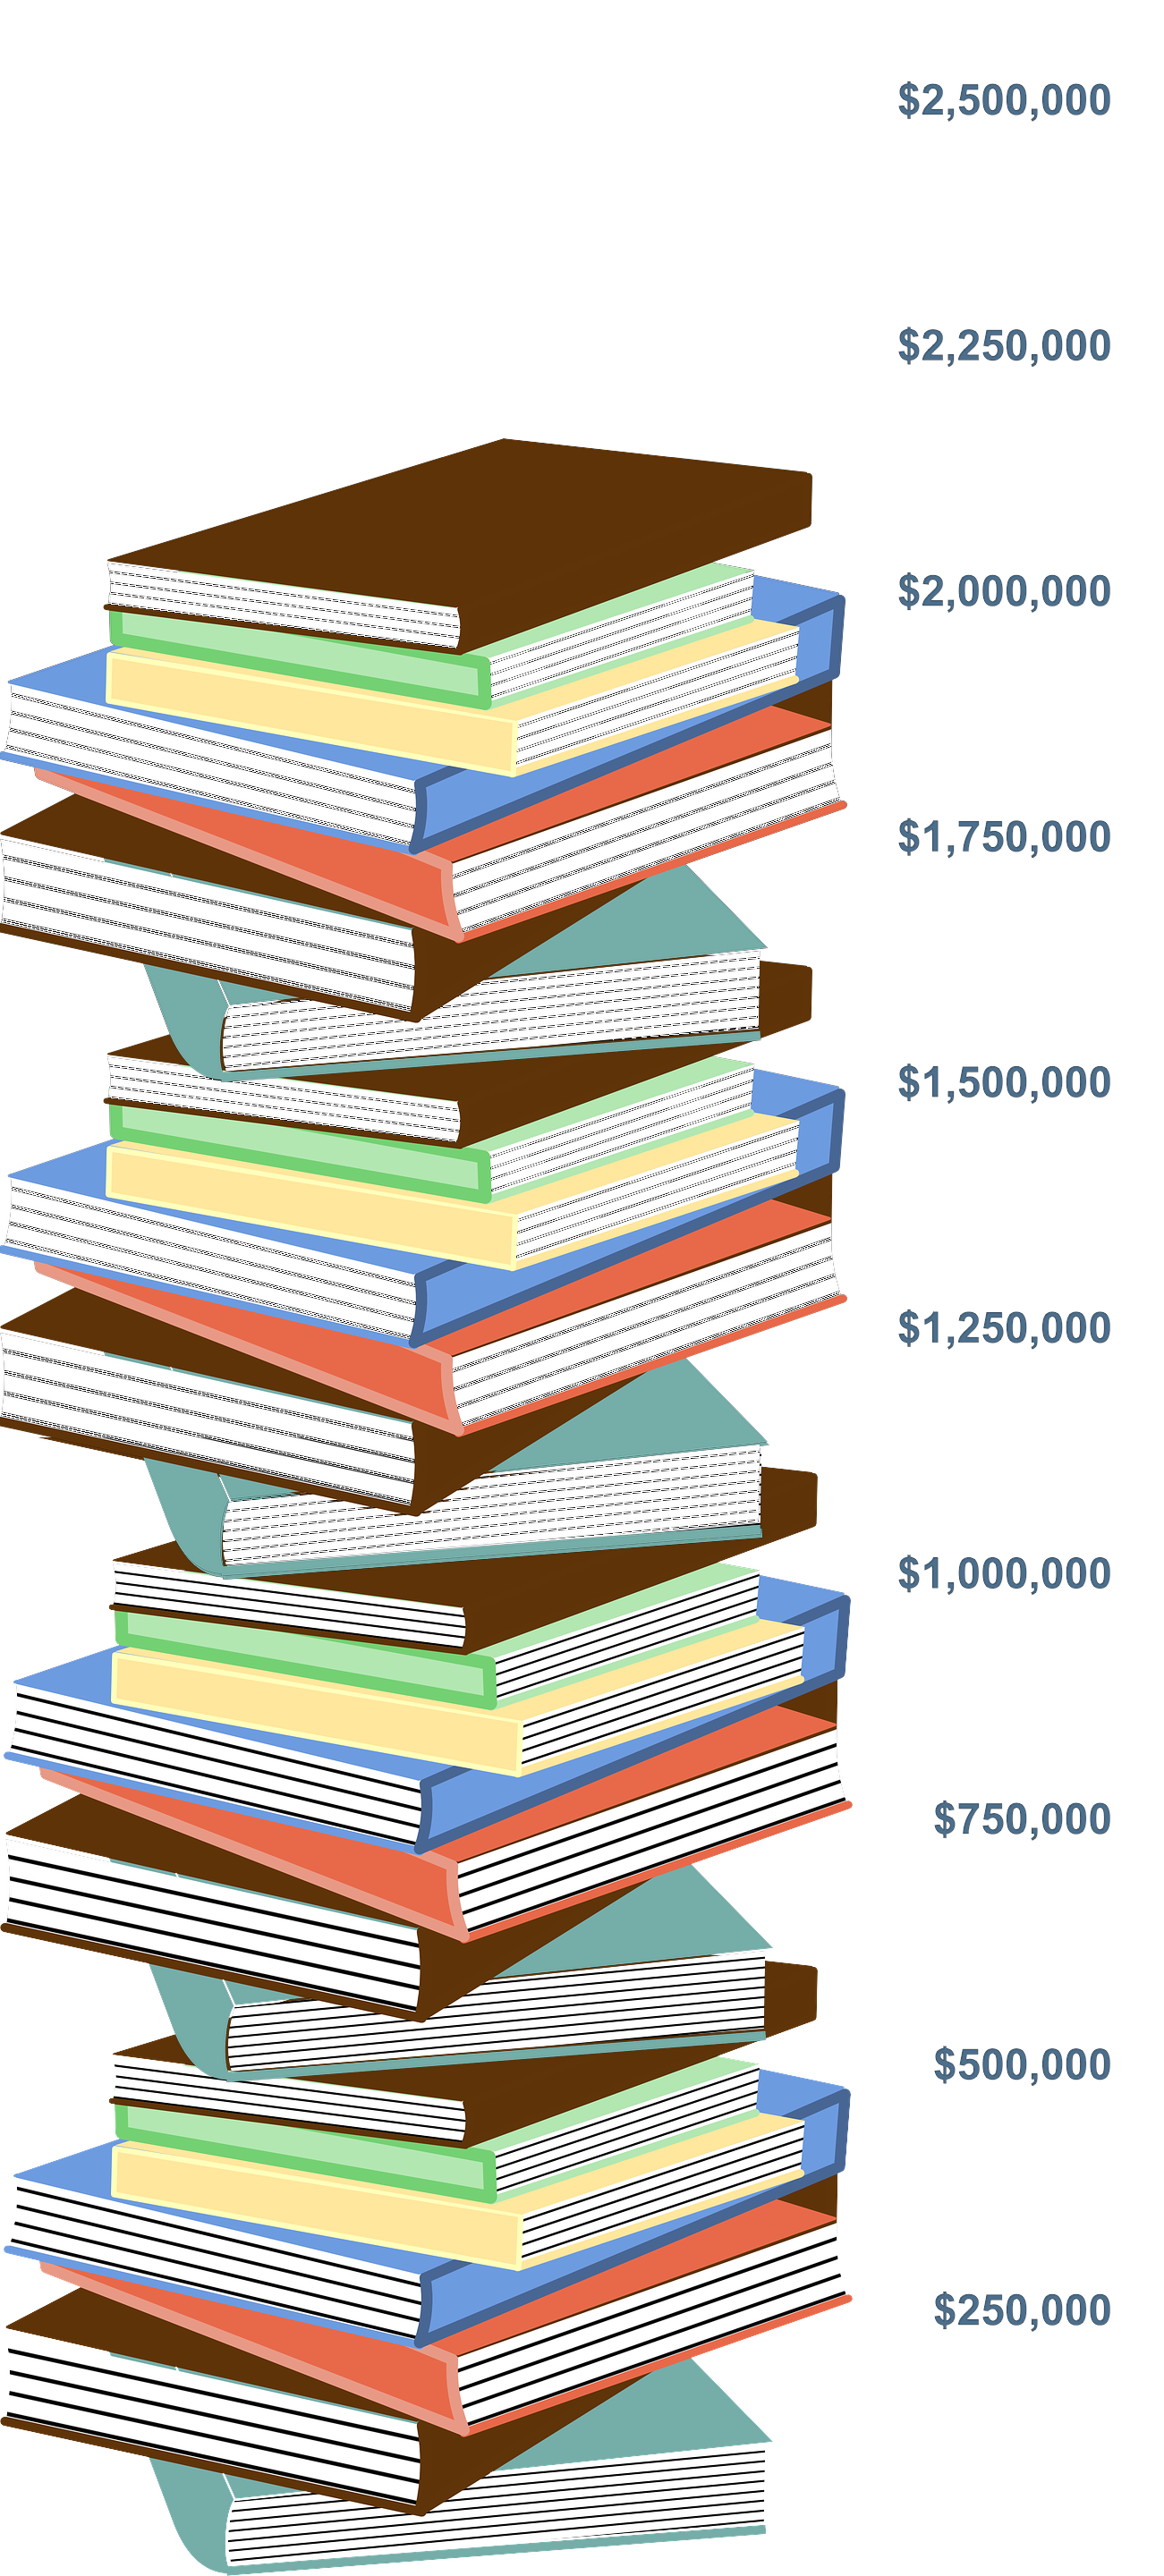 Book stack showing $2,190,000 raised so far